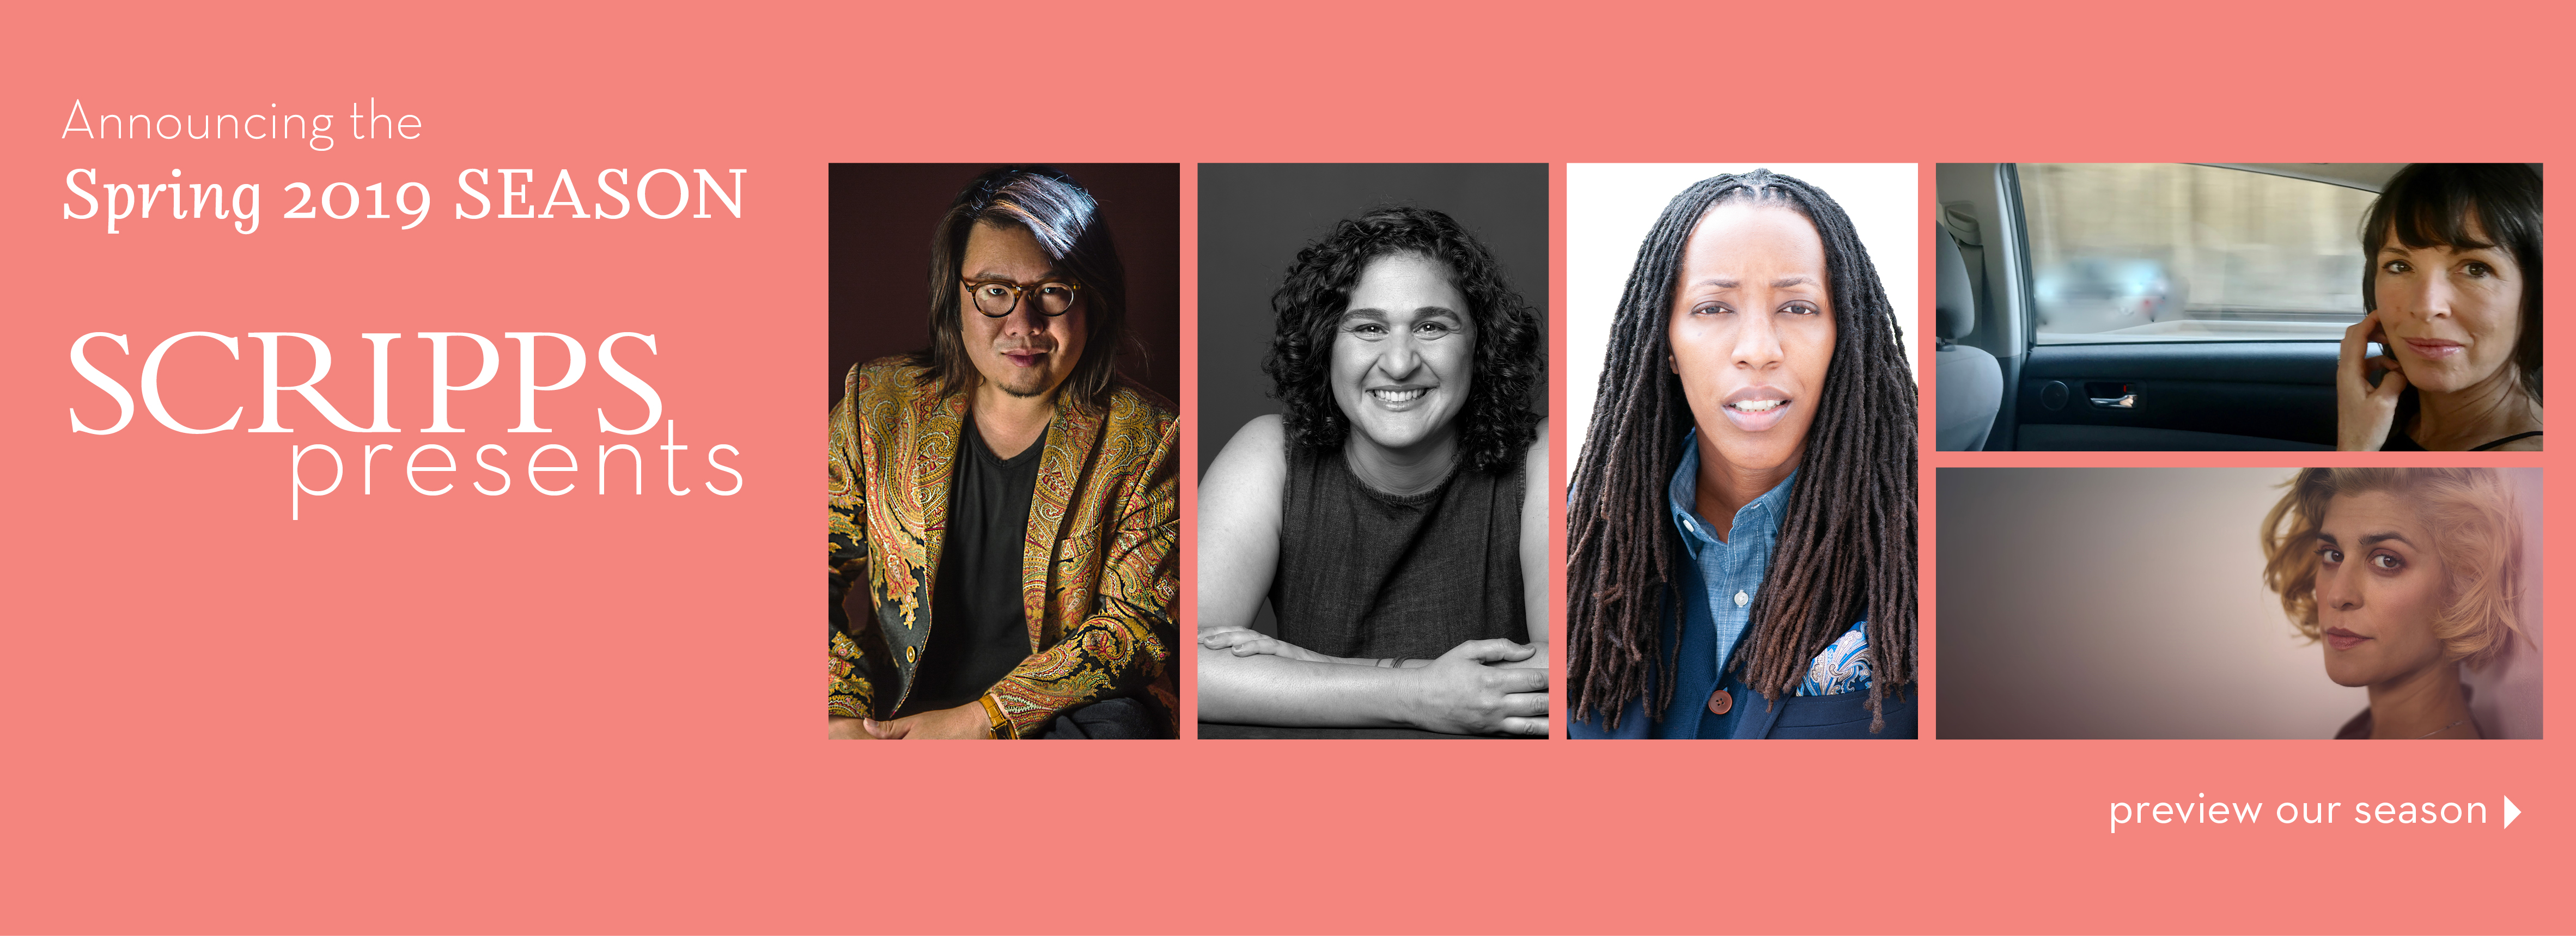 Scripps Presents: Spring 2019 Lineup Features the Best in Contemporary Thought and Performance